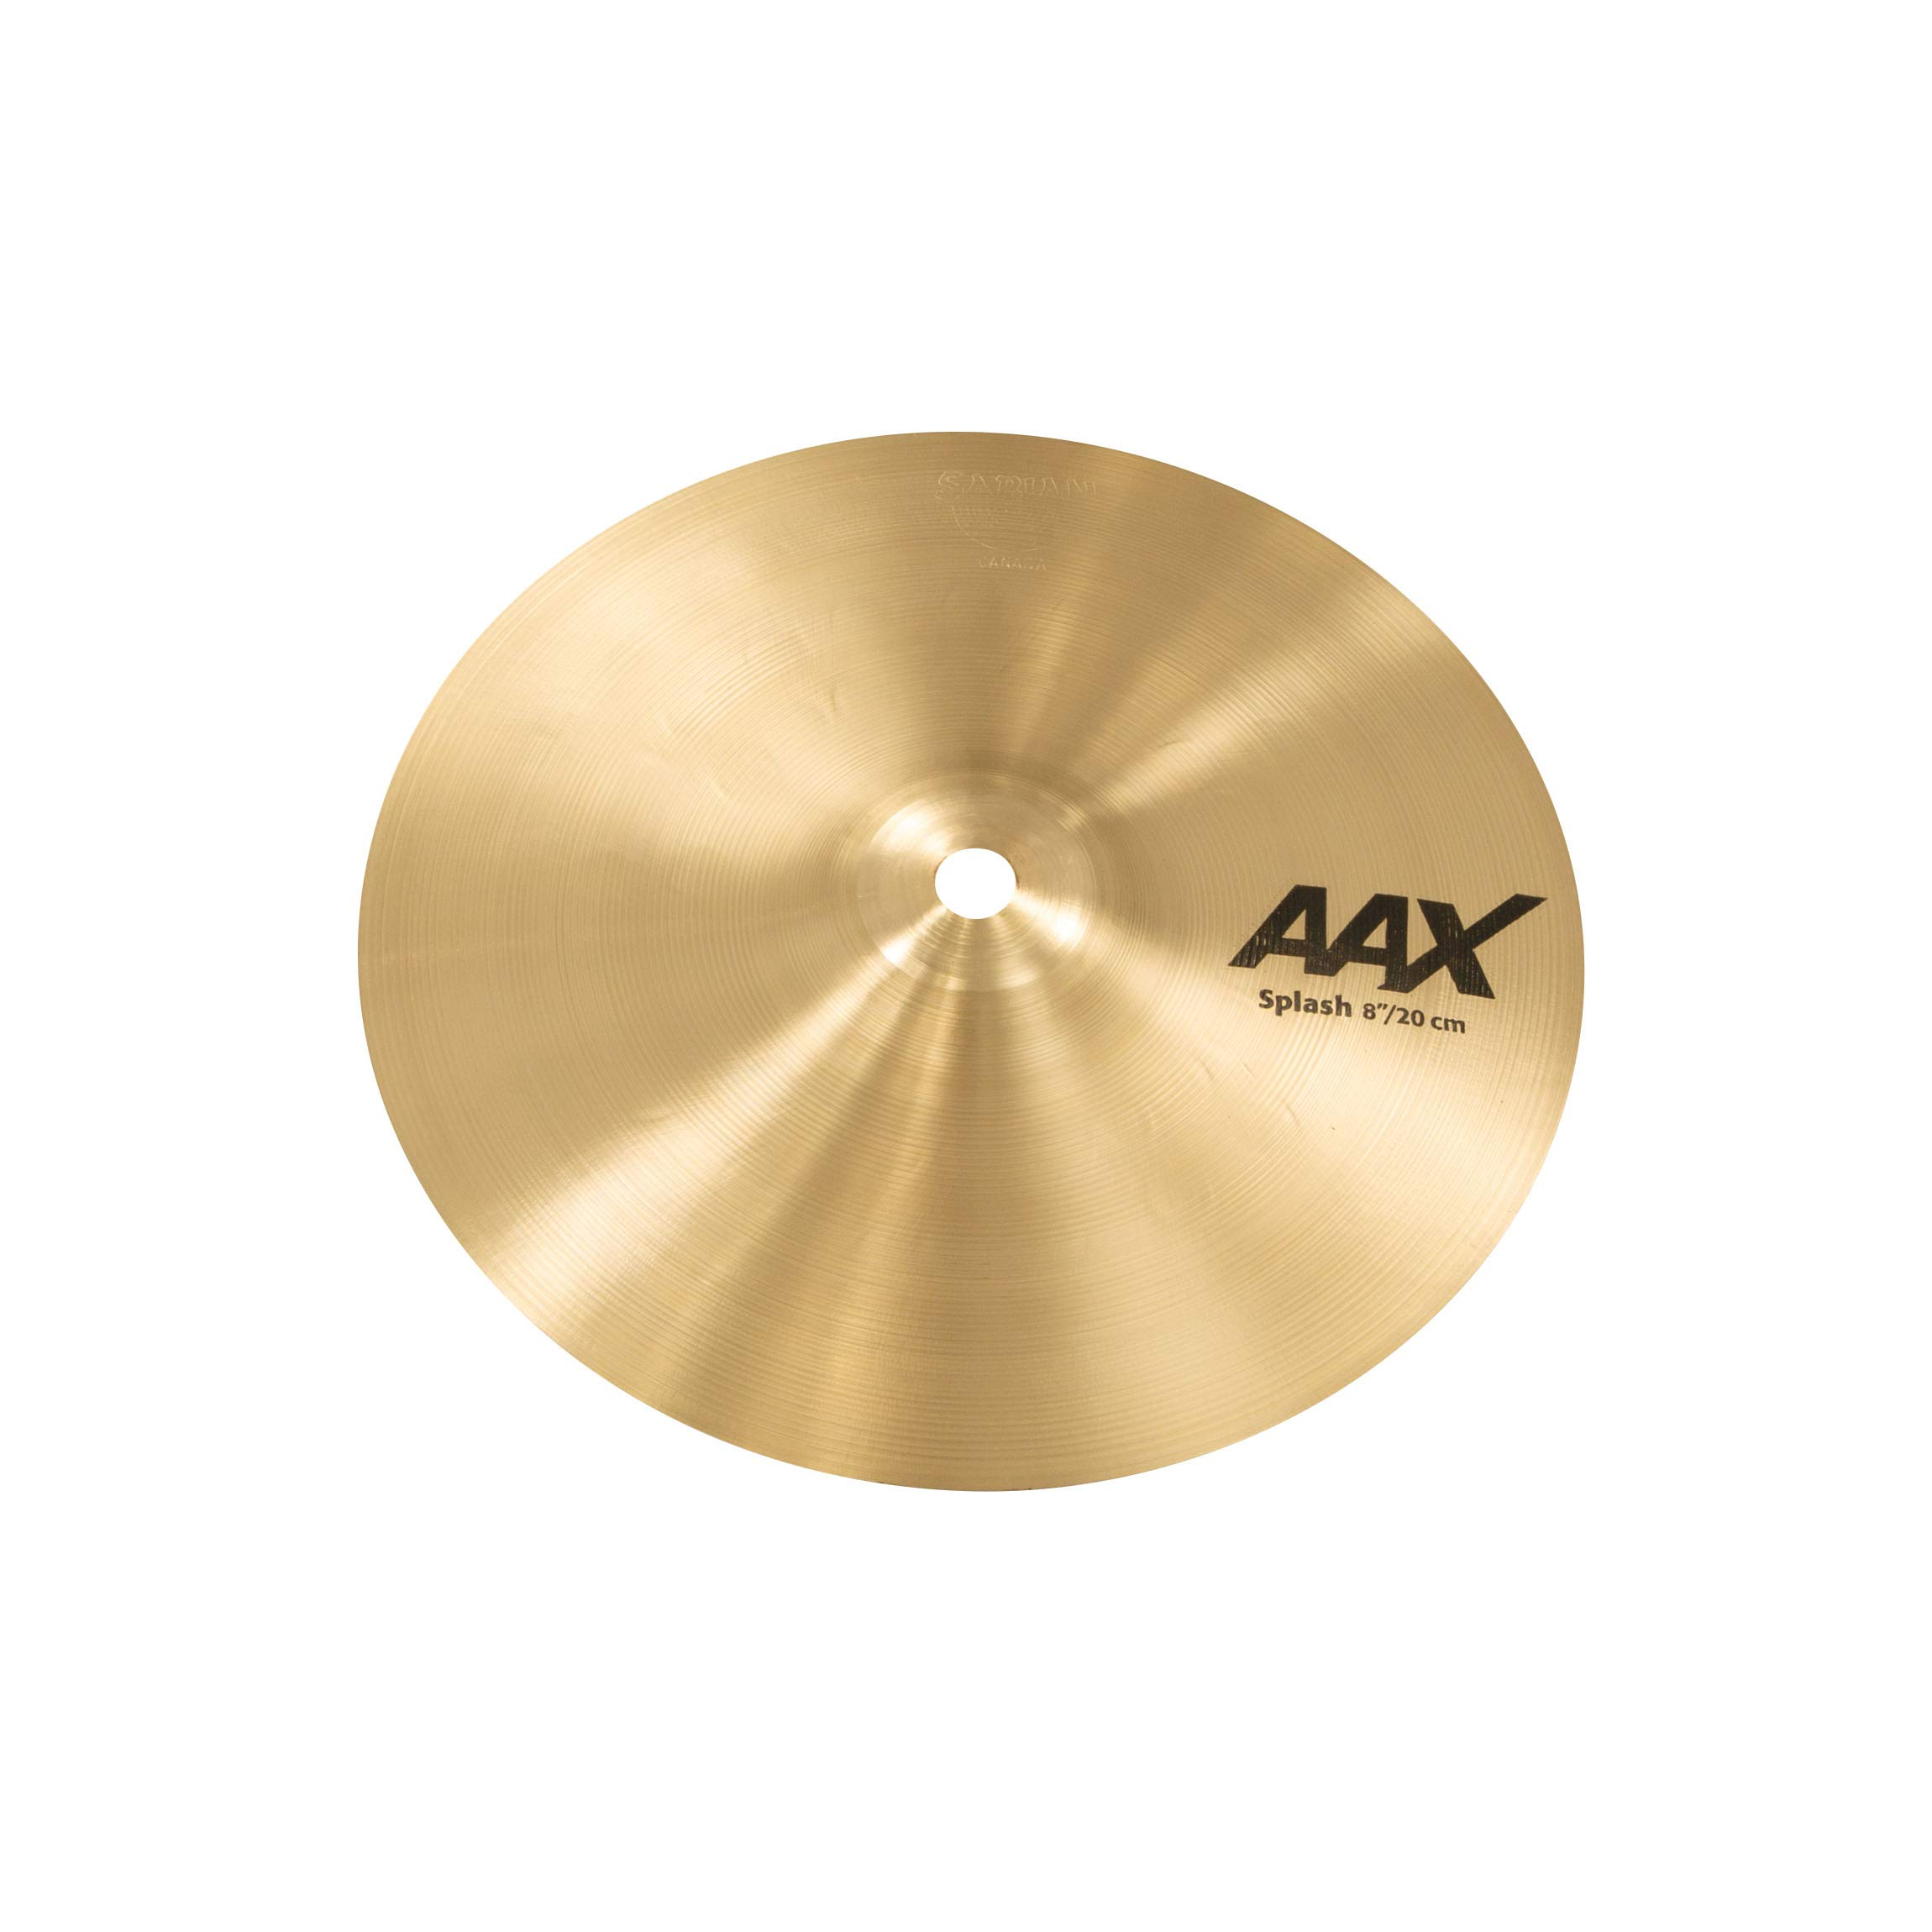 Sabian Cymbal Variety Package (20805X)